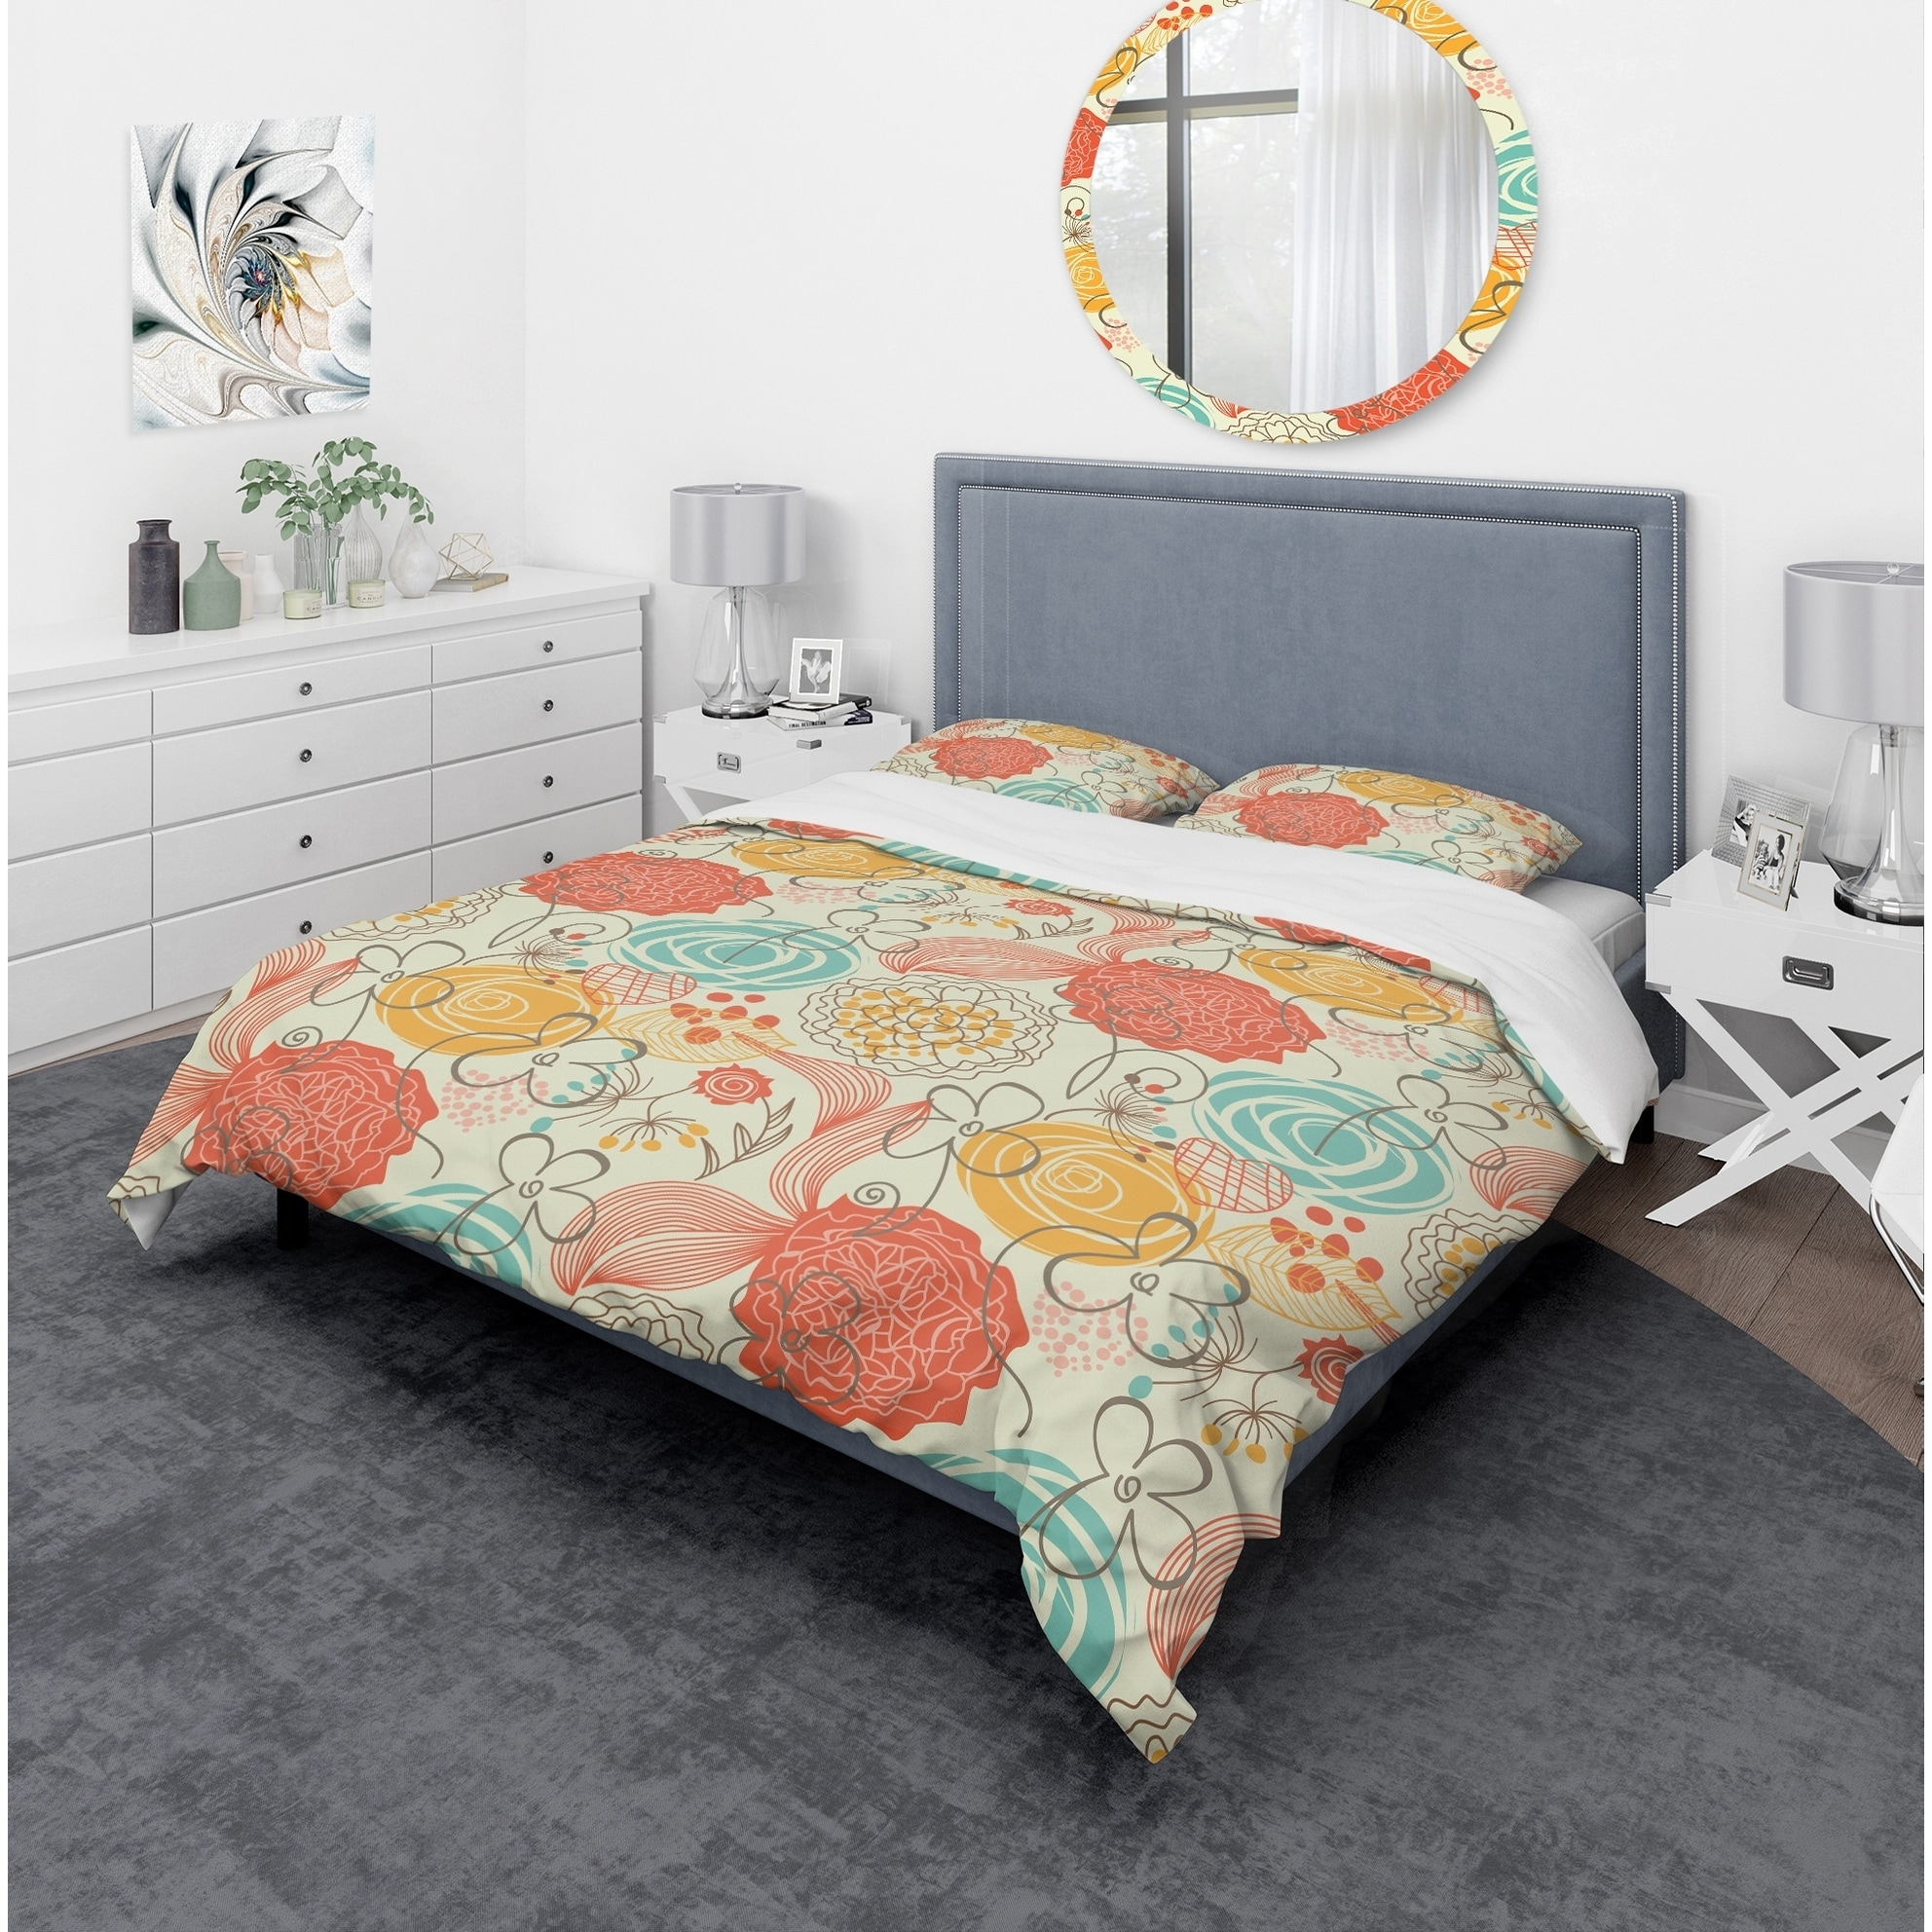 Designart Retro Floral Pattern Bohemian Eclectic Bedding Set Duvet Cover Shams Overstock 23506891 Twin Cover 1 Sham Comforter Not Included